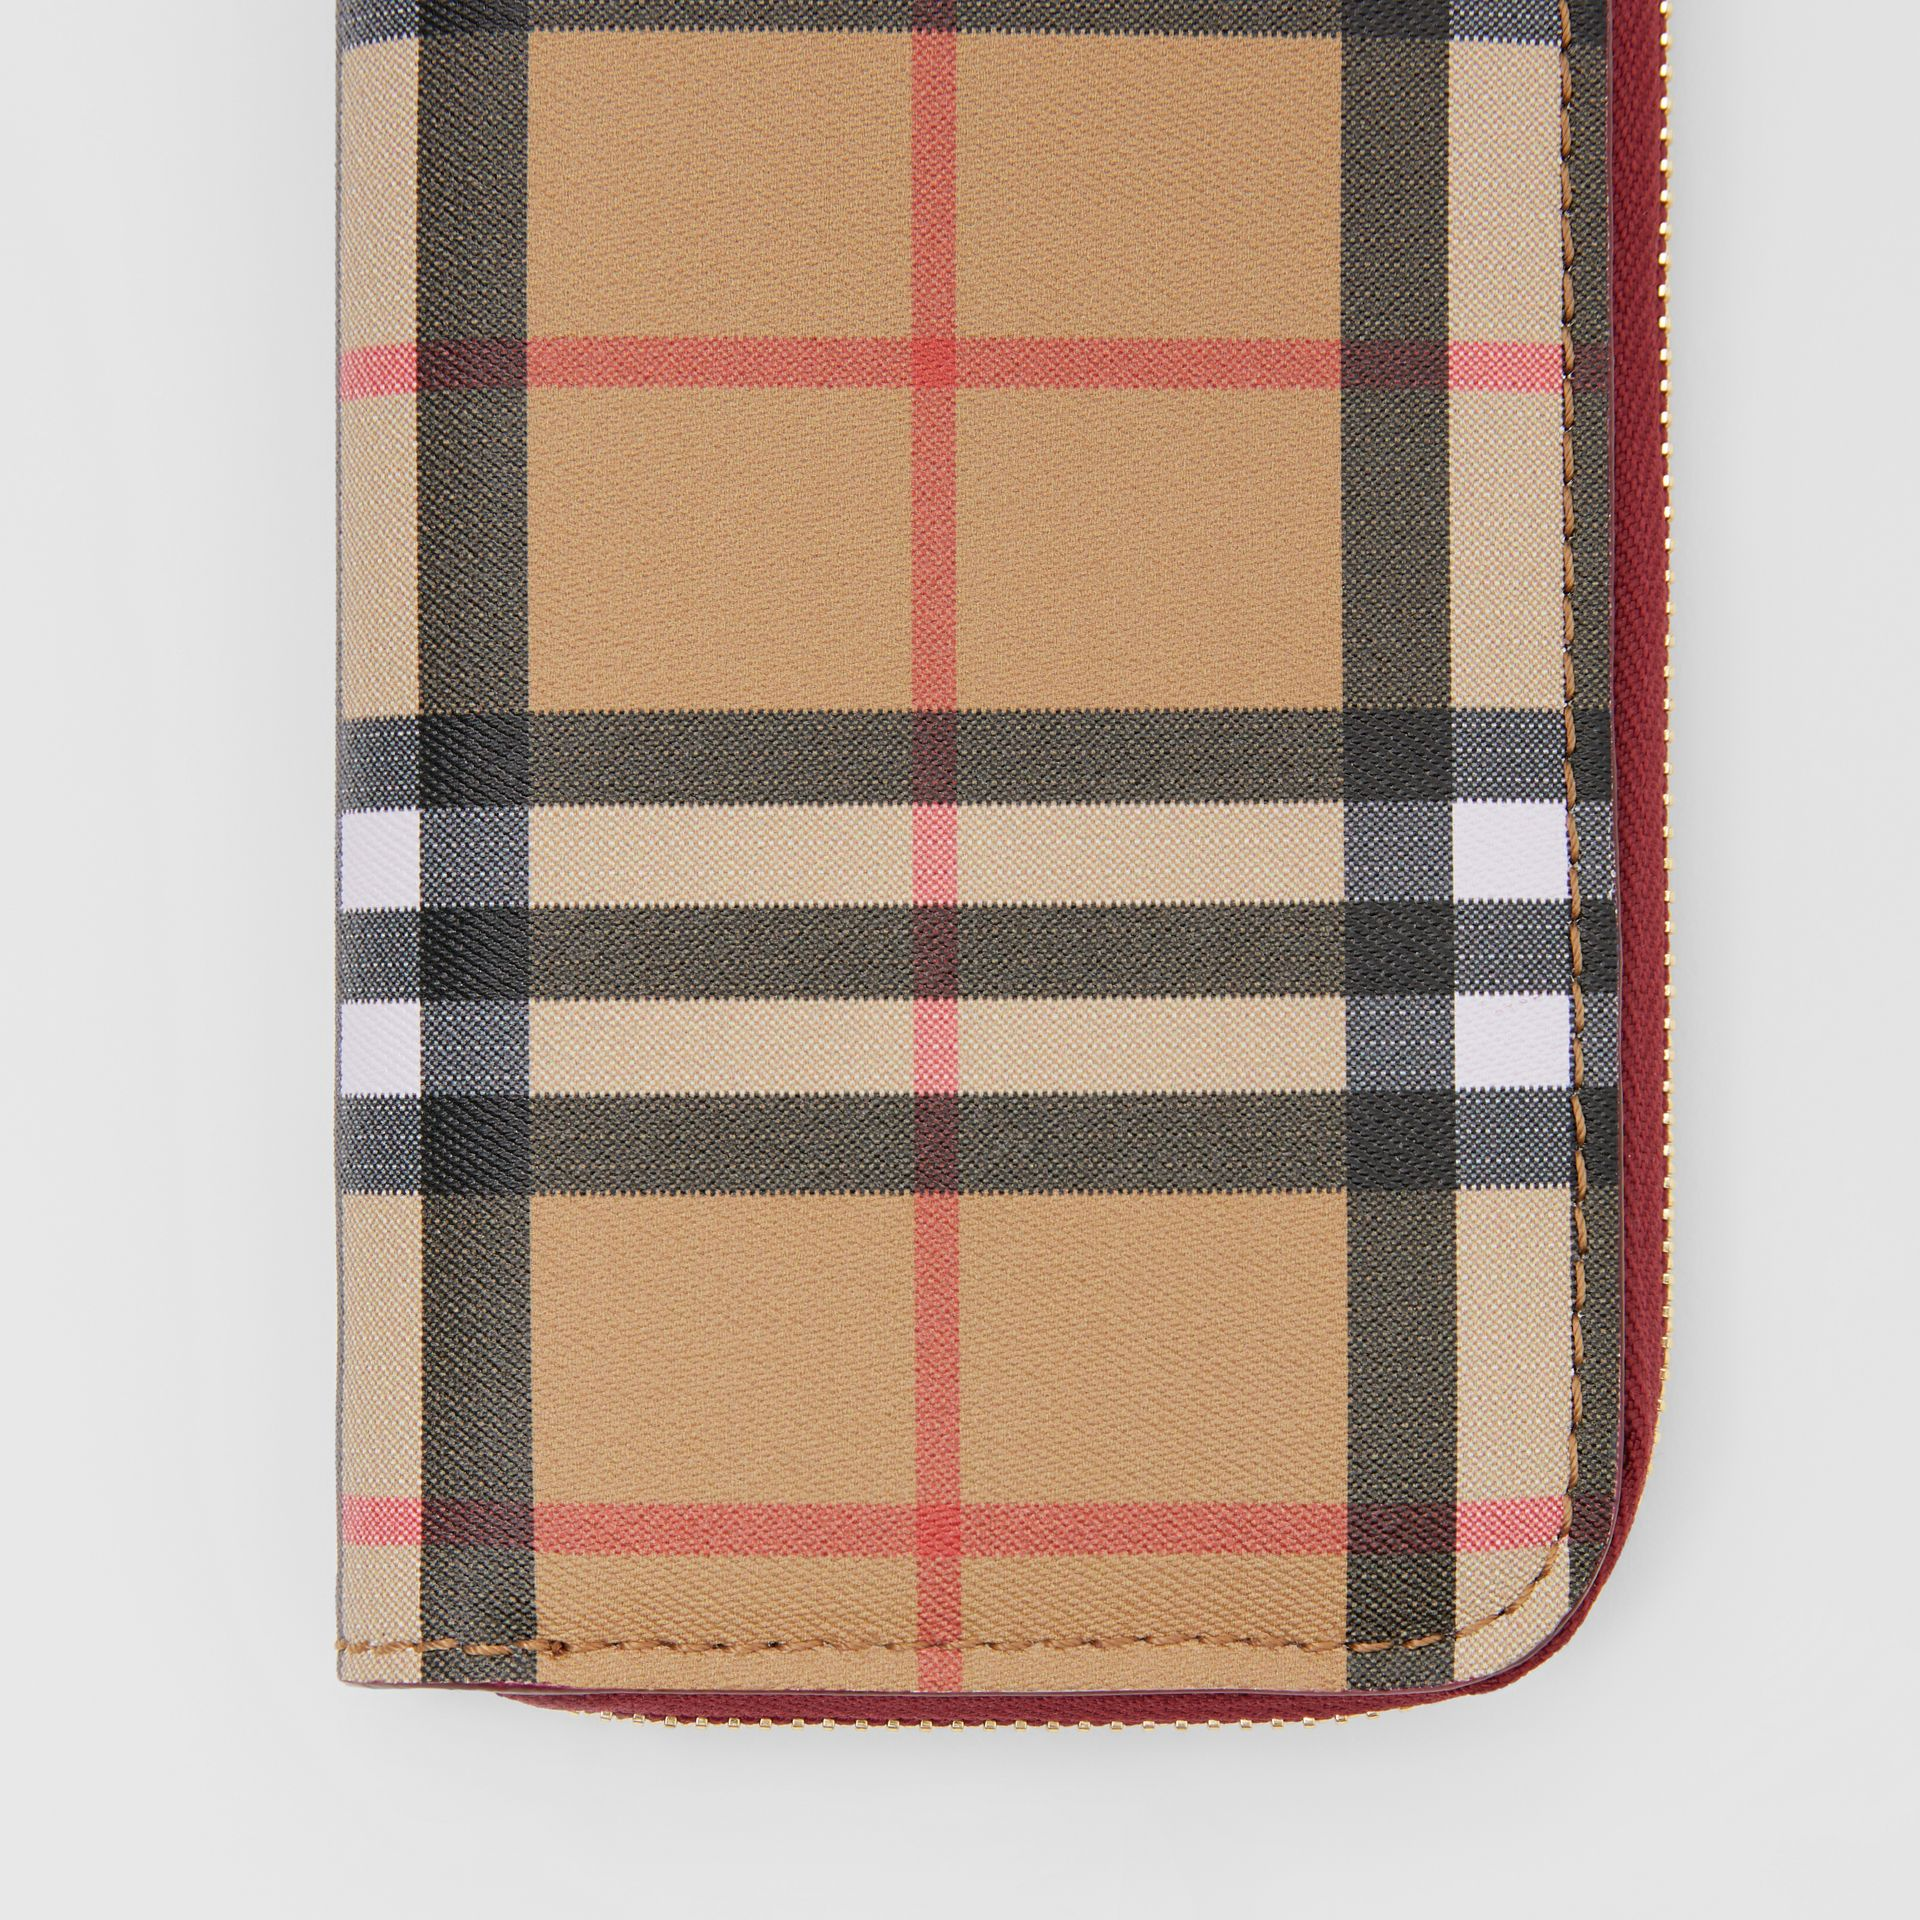 Vintage Check and Leather Ziparound Wallet in Crimson - Women | Burberry Hong Kong S.A.R - gallery image 1